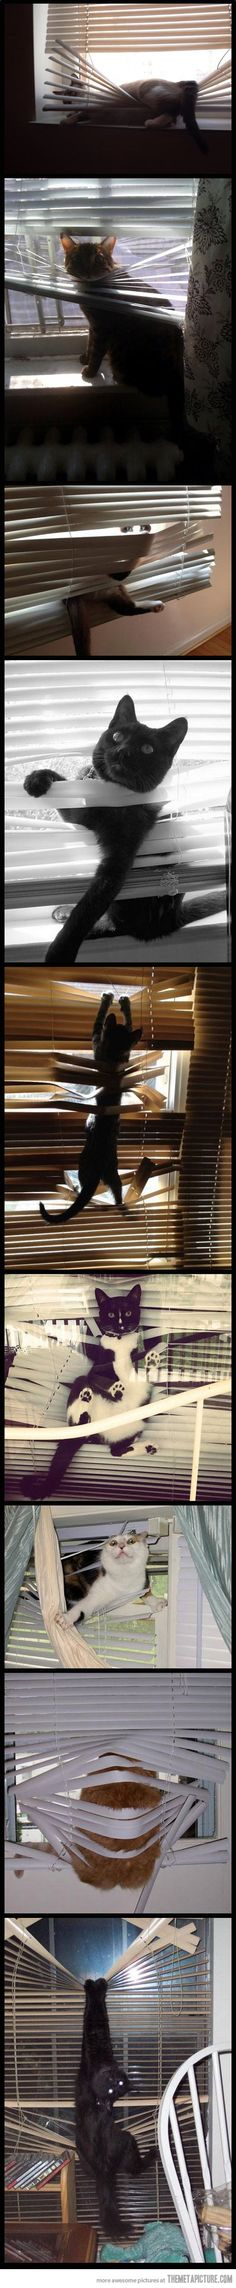 Cats vs. Blinds…I actually have a pic of my cat like this! Haa!